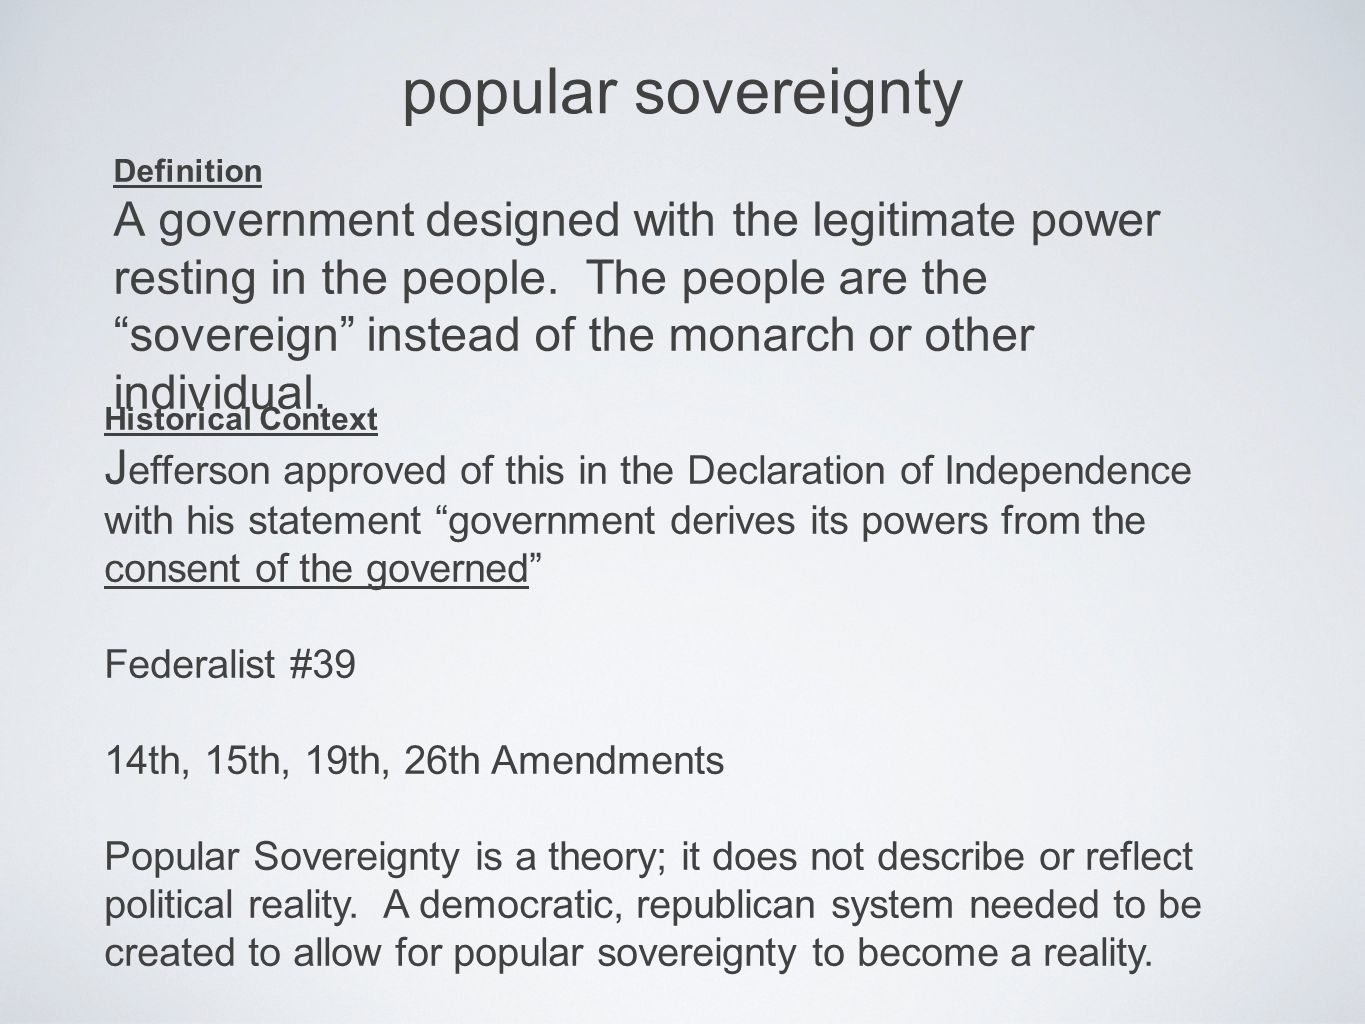 popular sovereignty Definition A government designed with the legitimate power resting in the people.